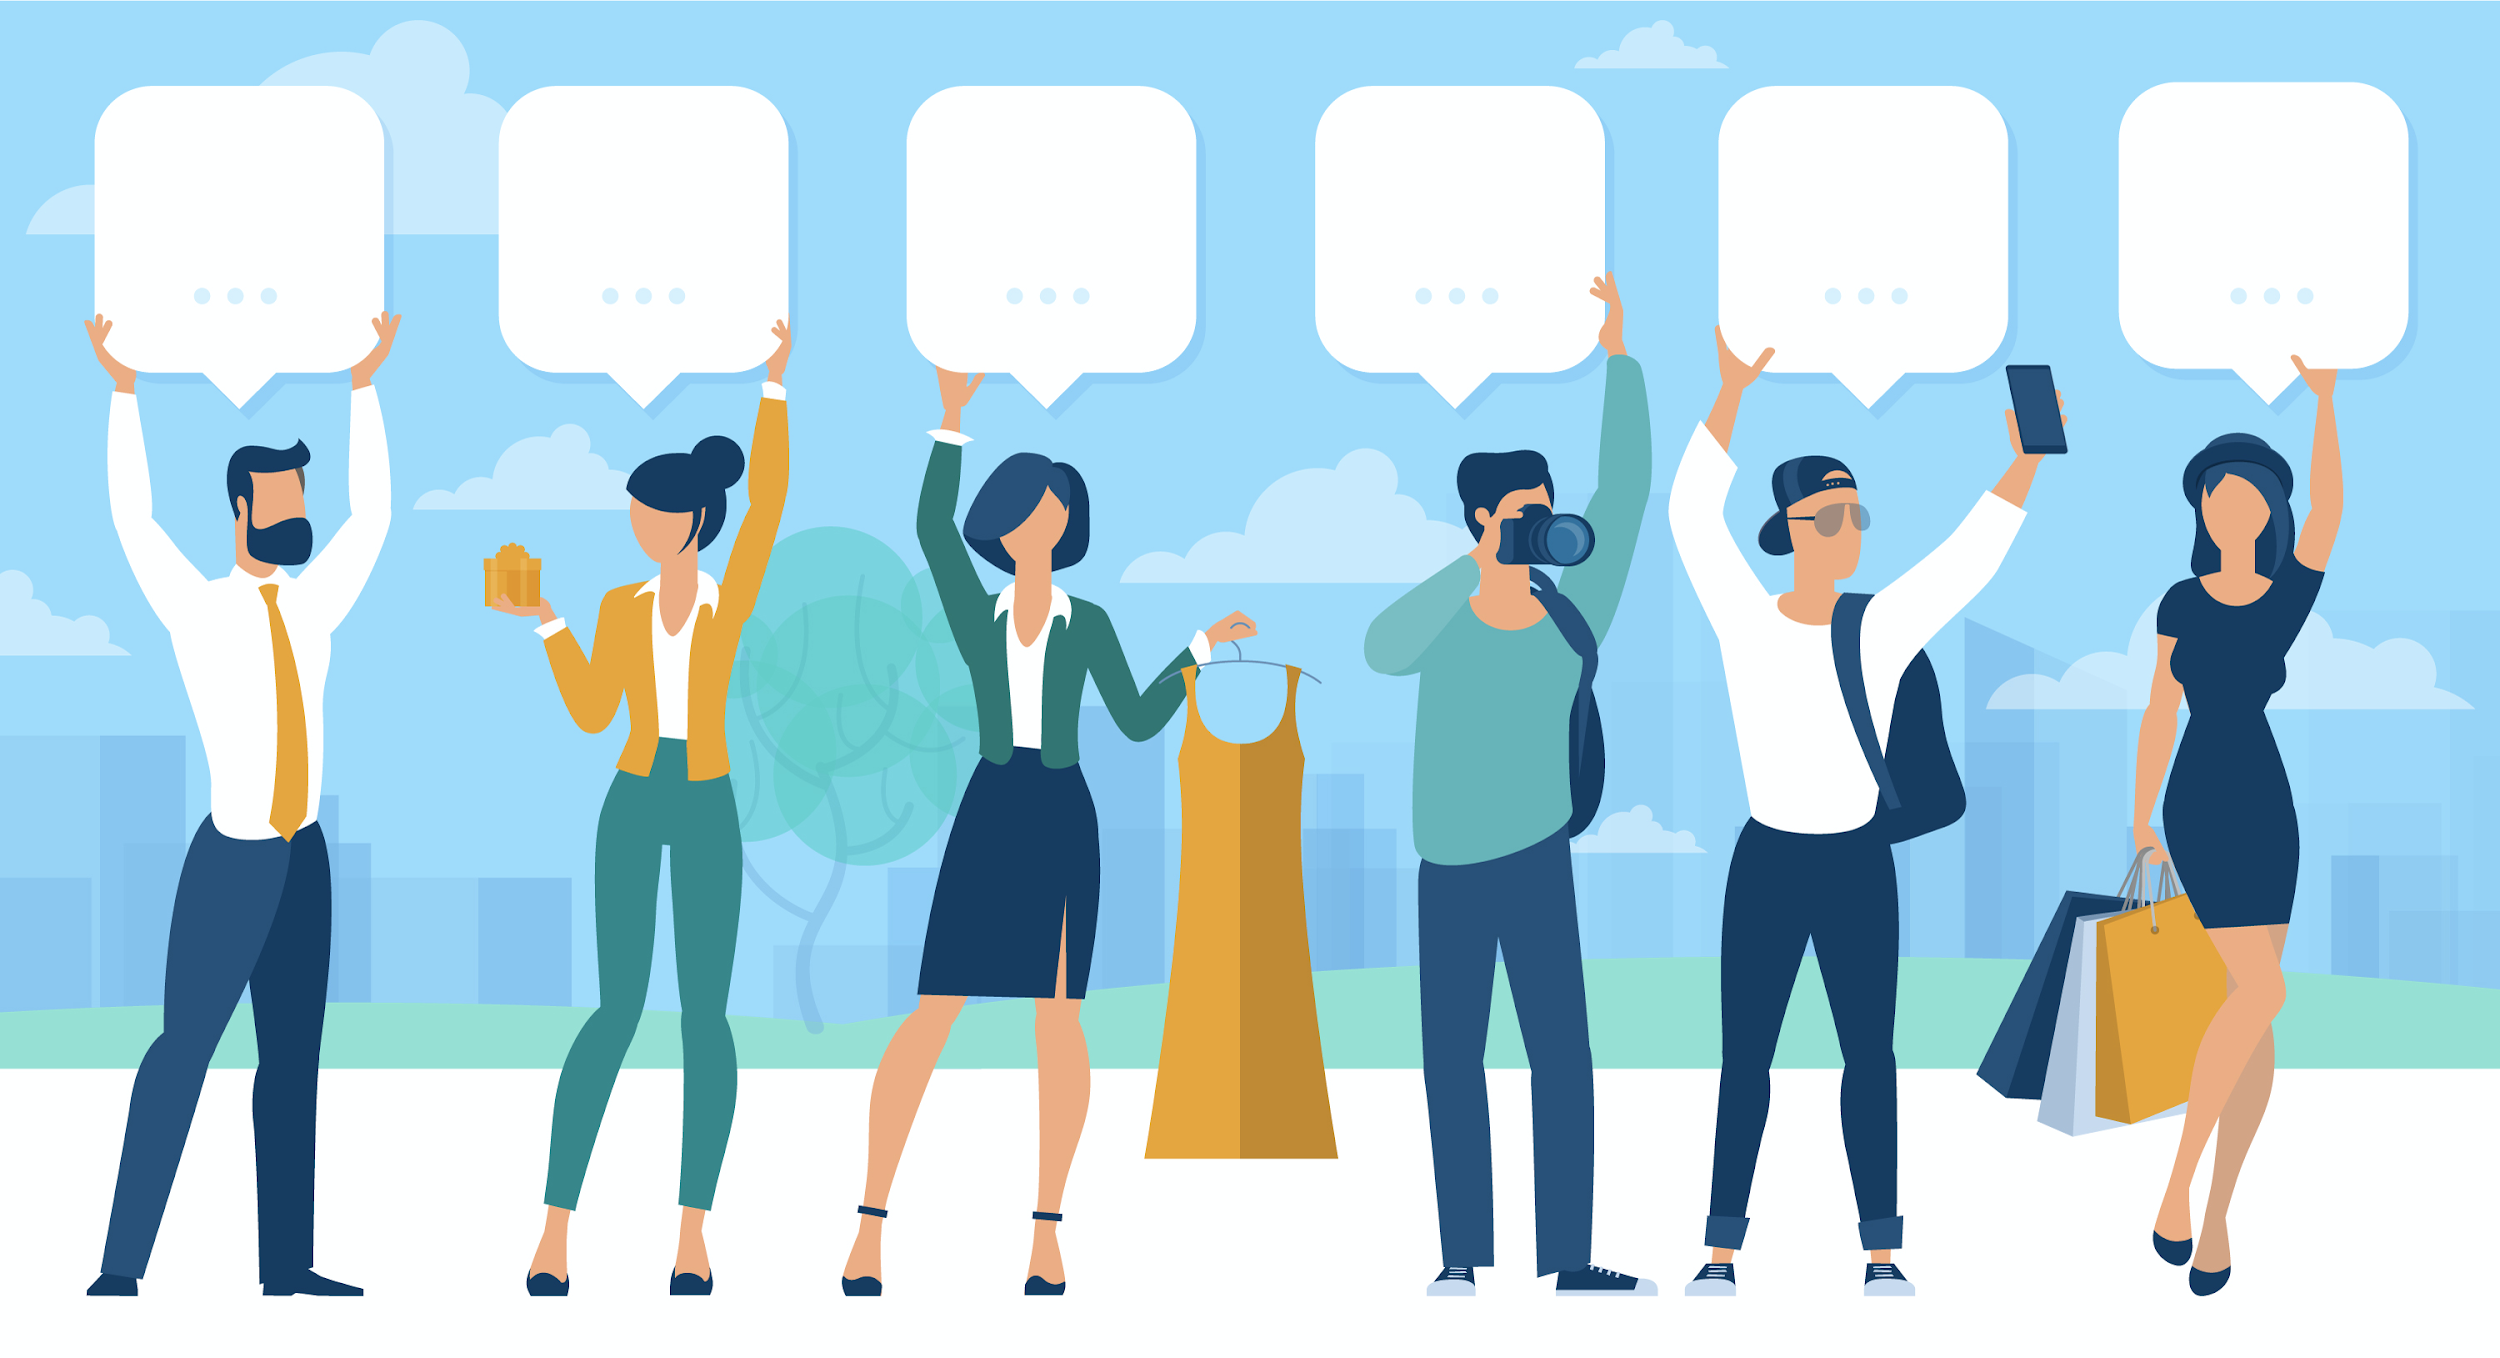 Vector image of various business people and citizens with speech bubbles above them